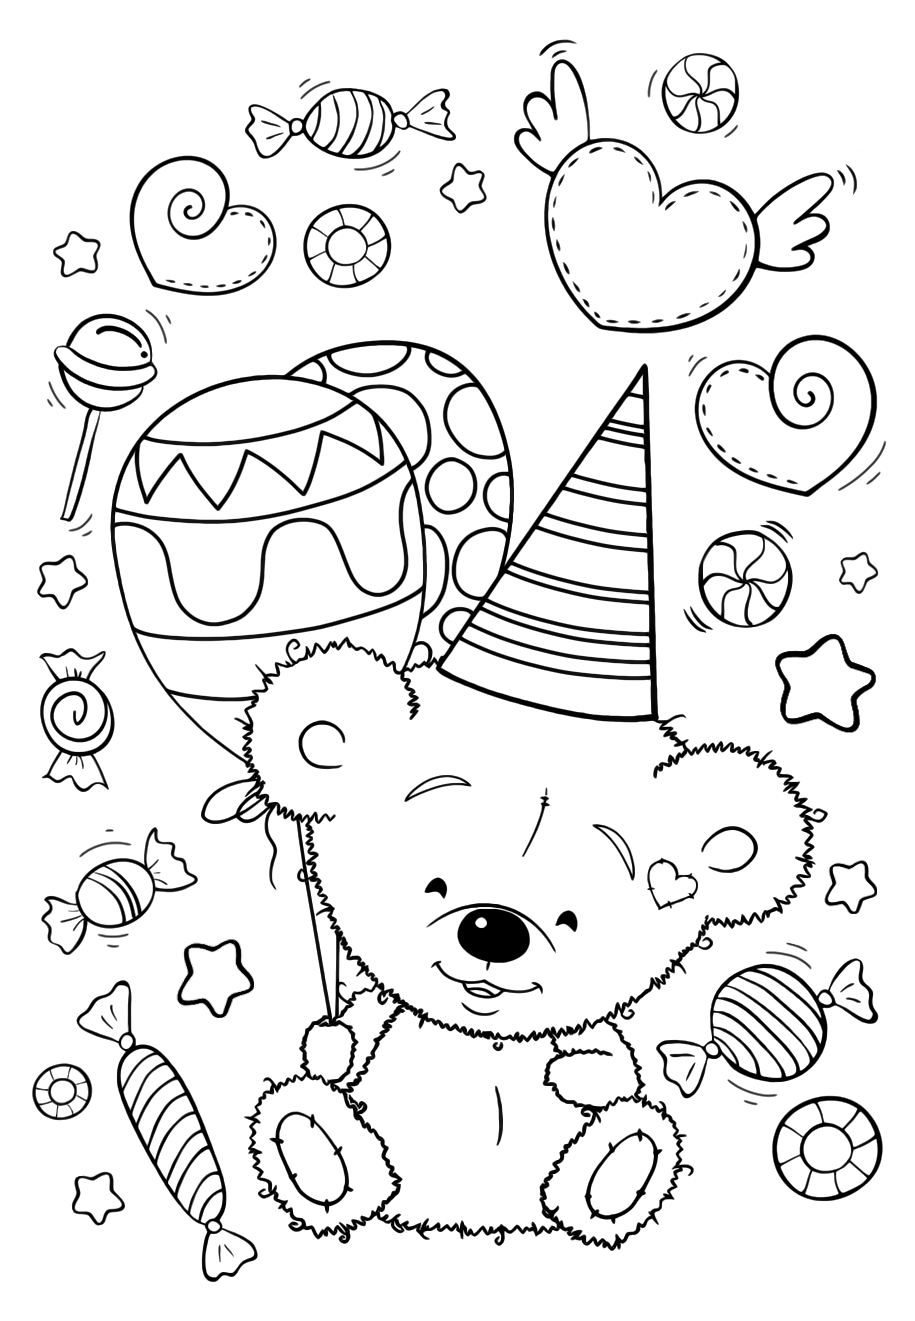 Bear with balloons on holiday